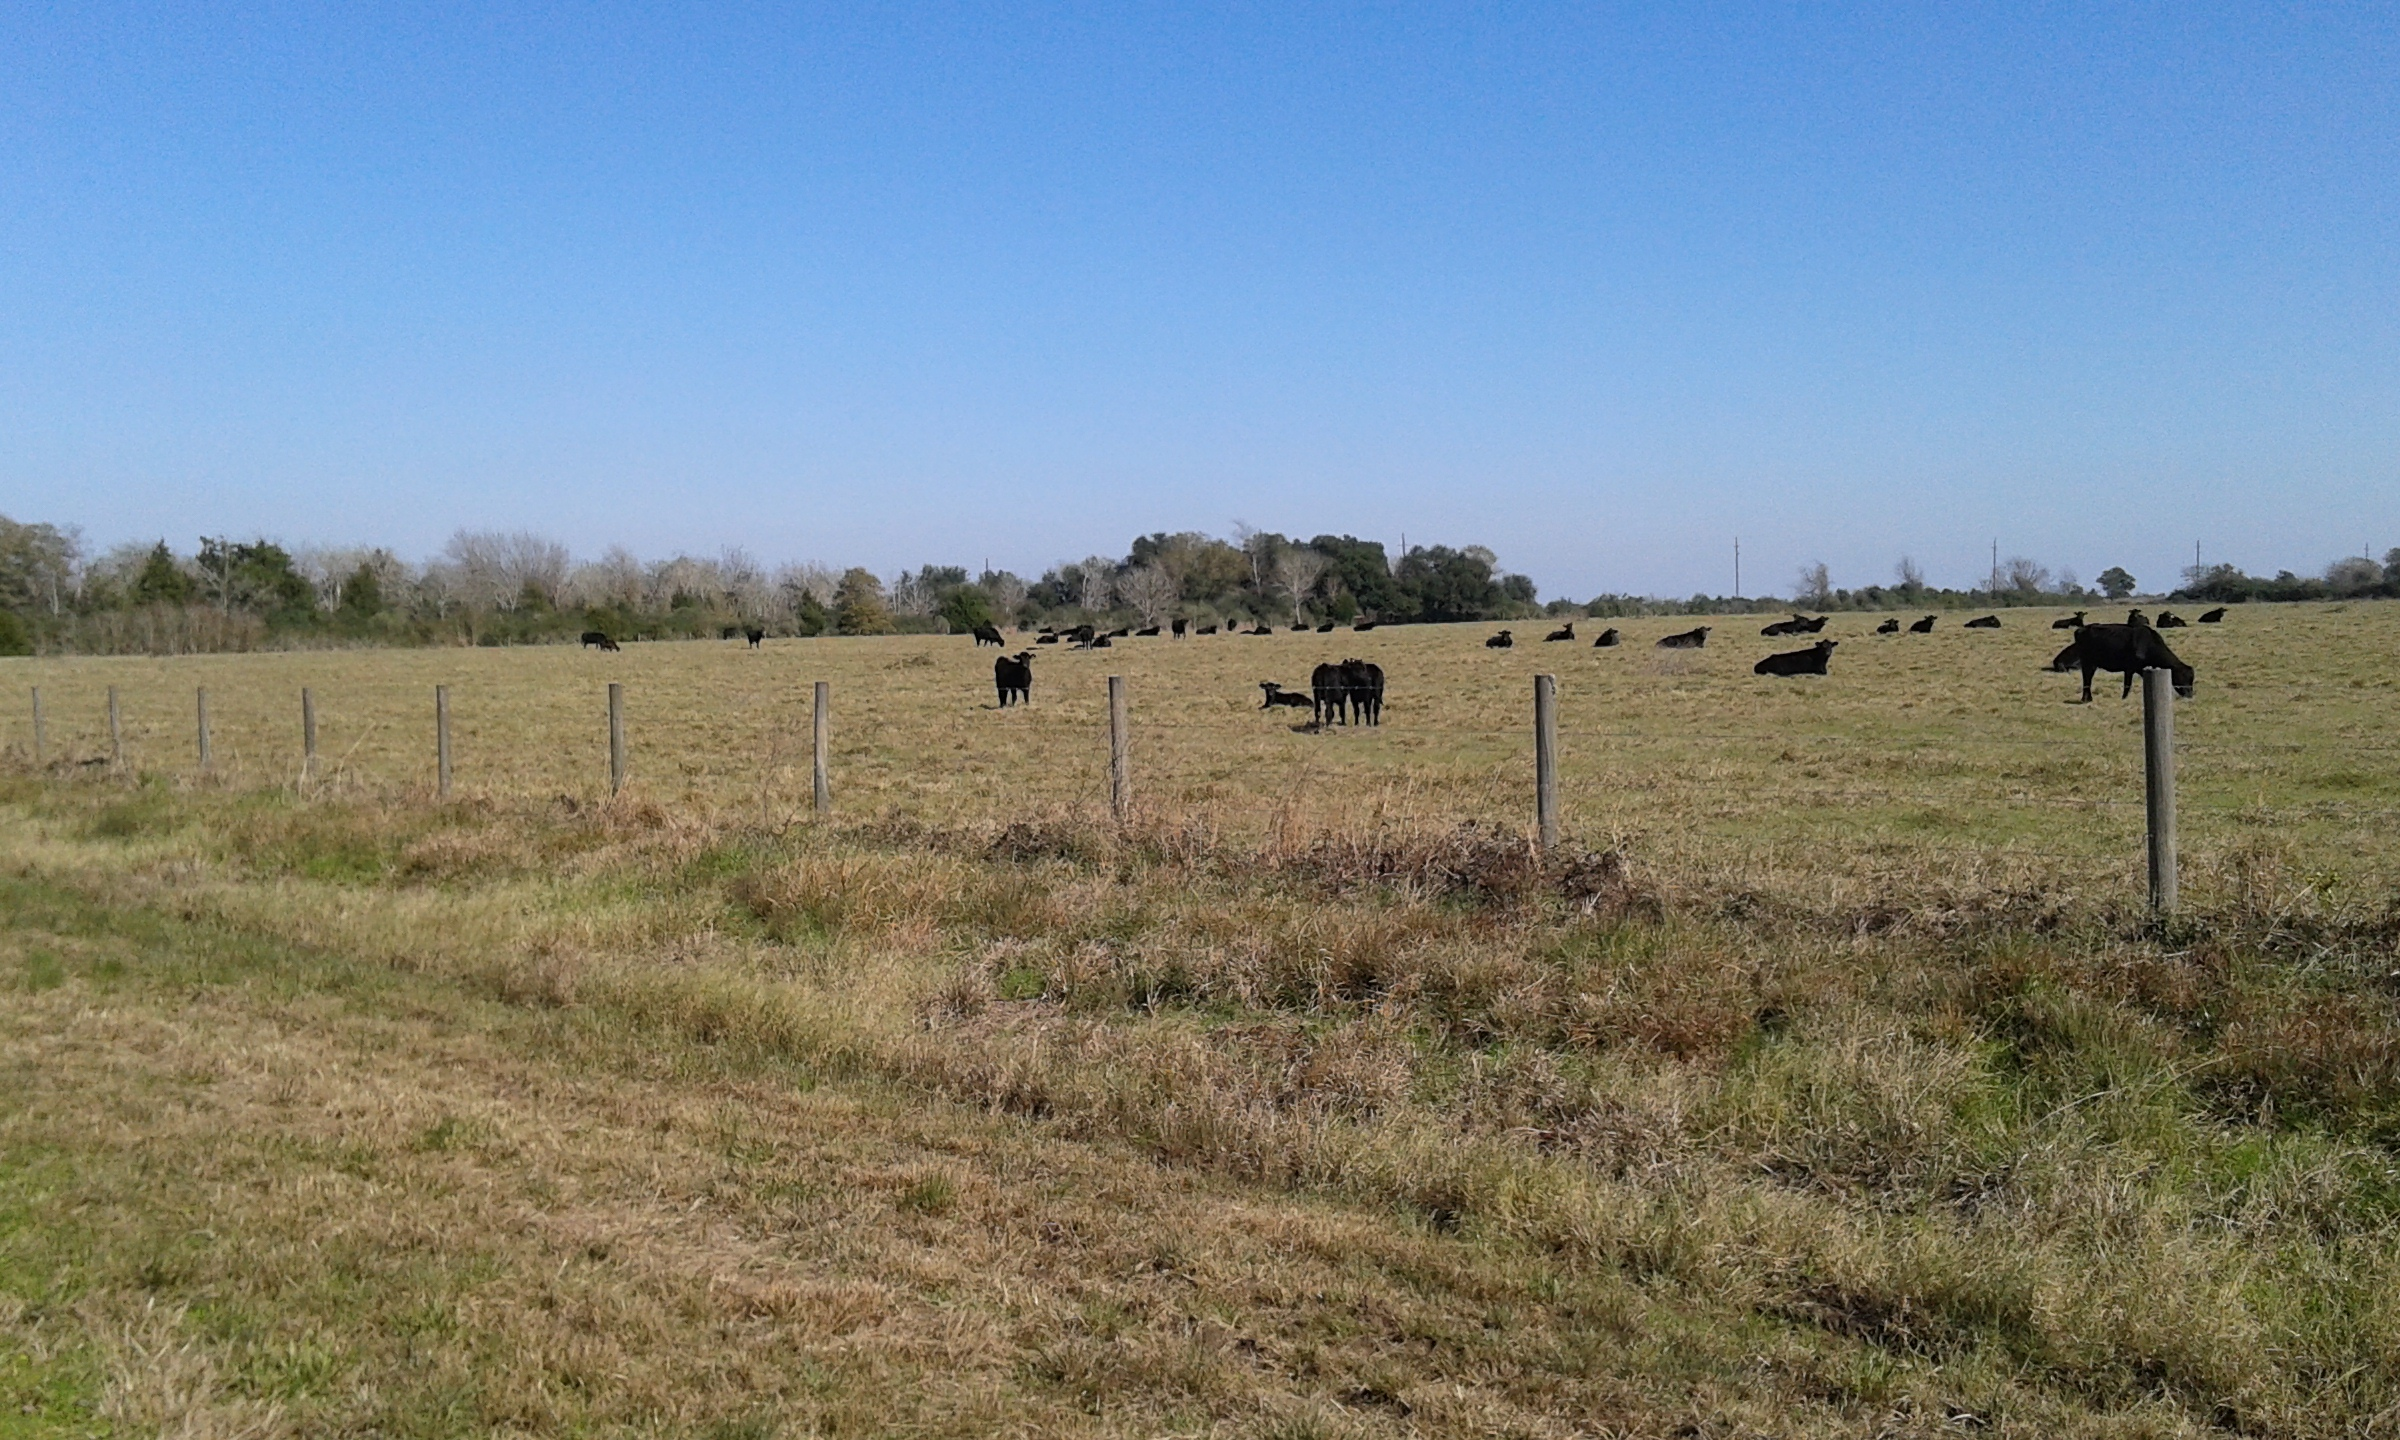 Cows, cows, and wait, more cows!